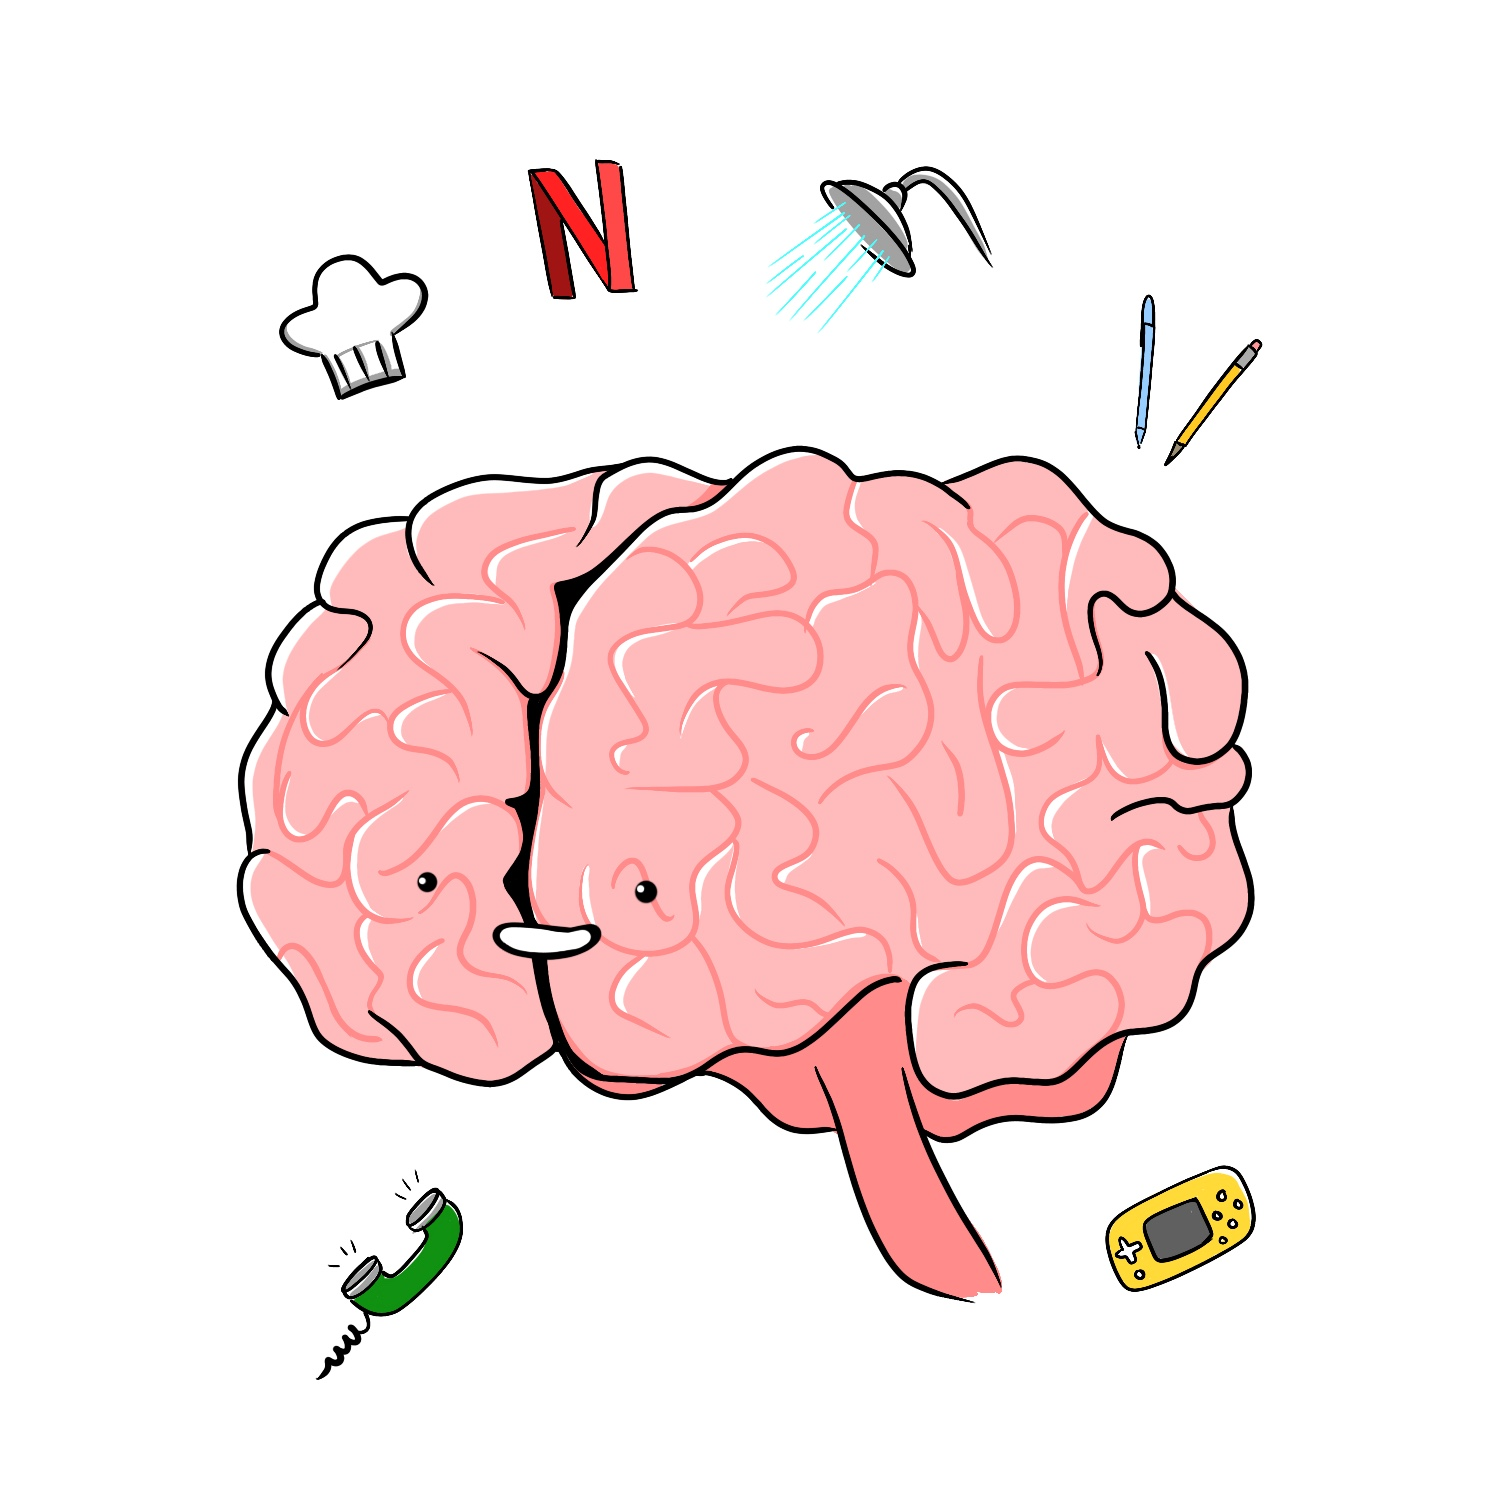 An illustrated pink brain with tasks (such as a telephone, a radio, a shower head, a chef's hat, a pen and pencil, a red Netflix N, and a Nintendo Switch) all floating around the brain.